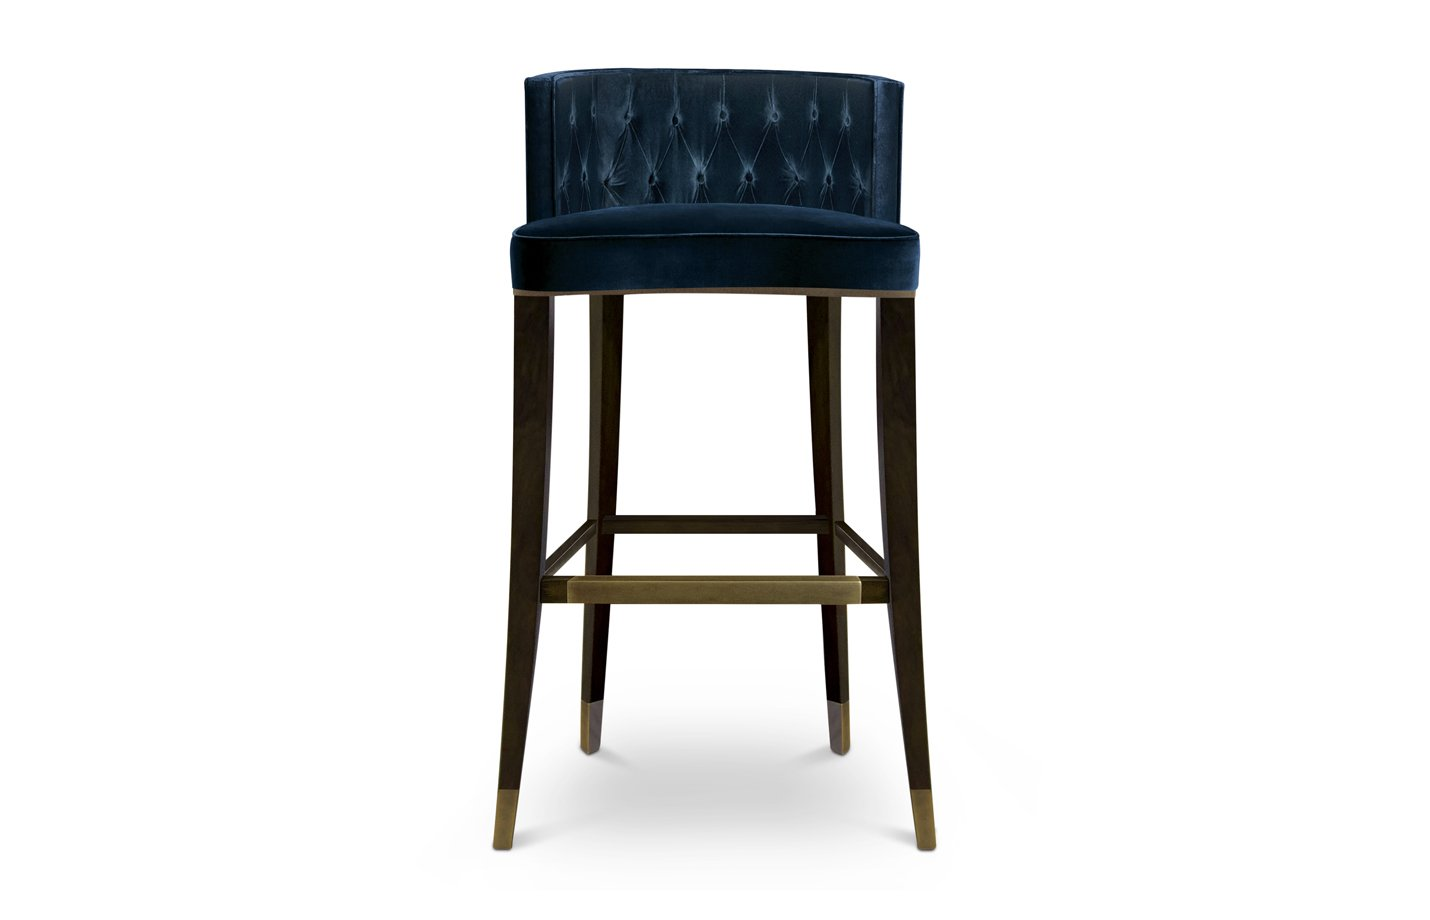 Bourbon Bar Chair Fabiia Dubai Uae